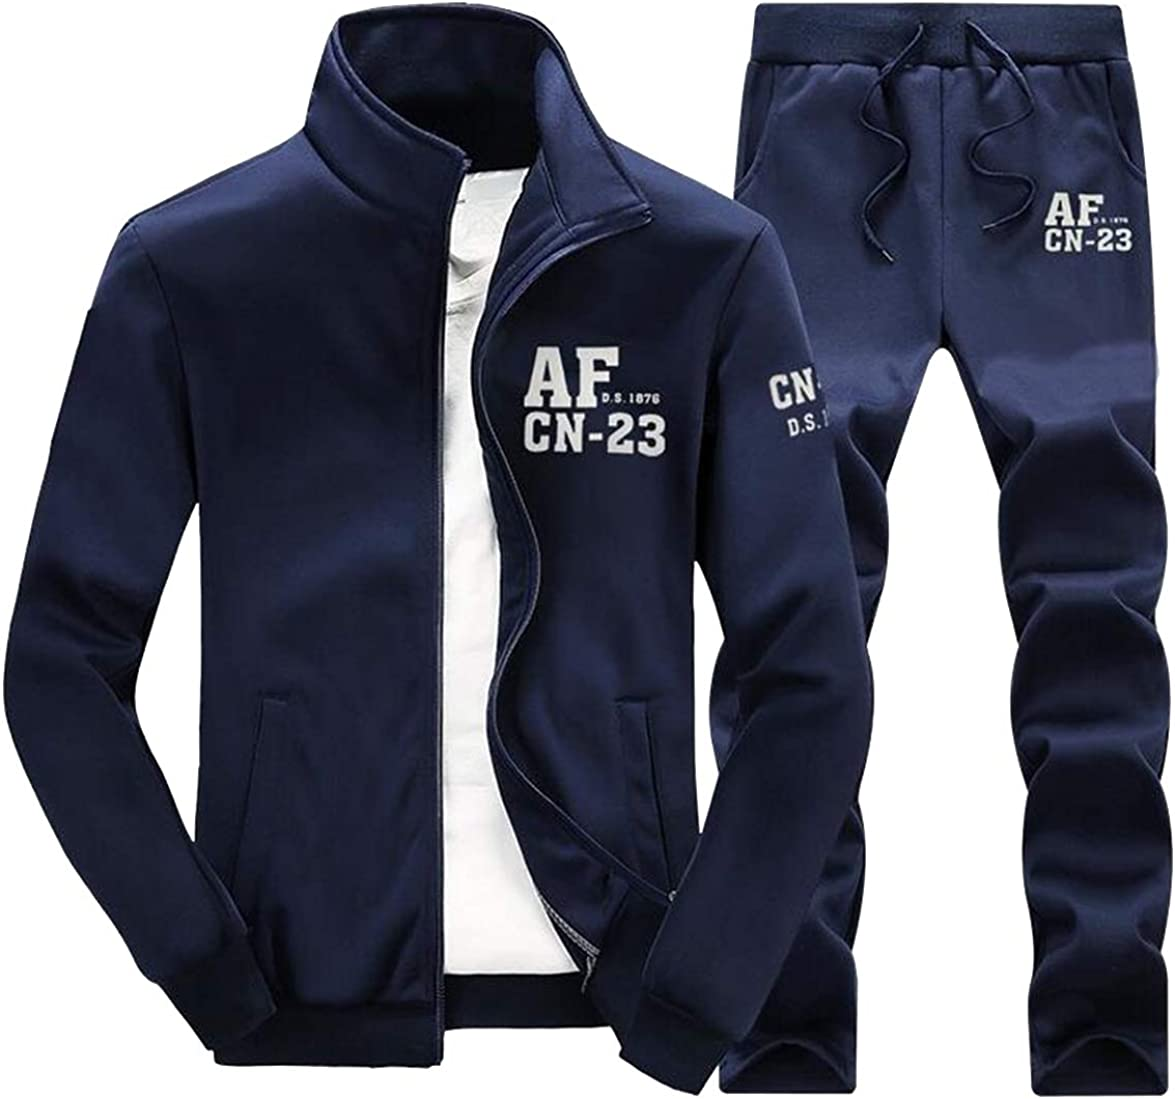 pipigo Mens Letter Print Jacket /& Pants 2 Pieces Suits Full-Zip Casual Active Outfits Tracksuit Sweatsuits Navy Blue L